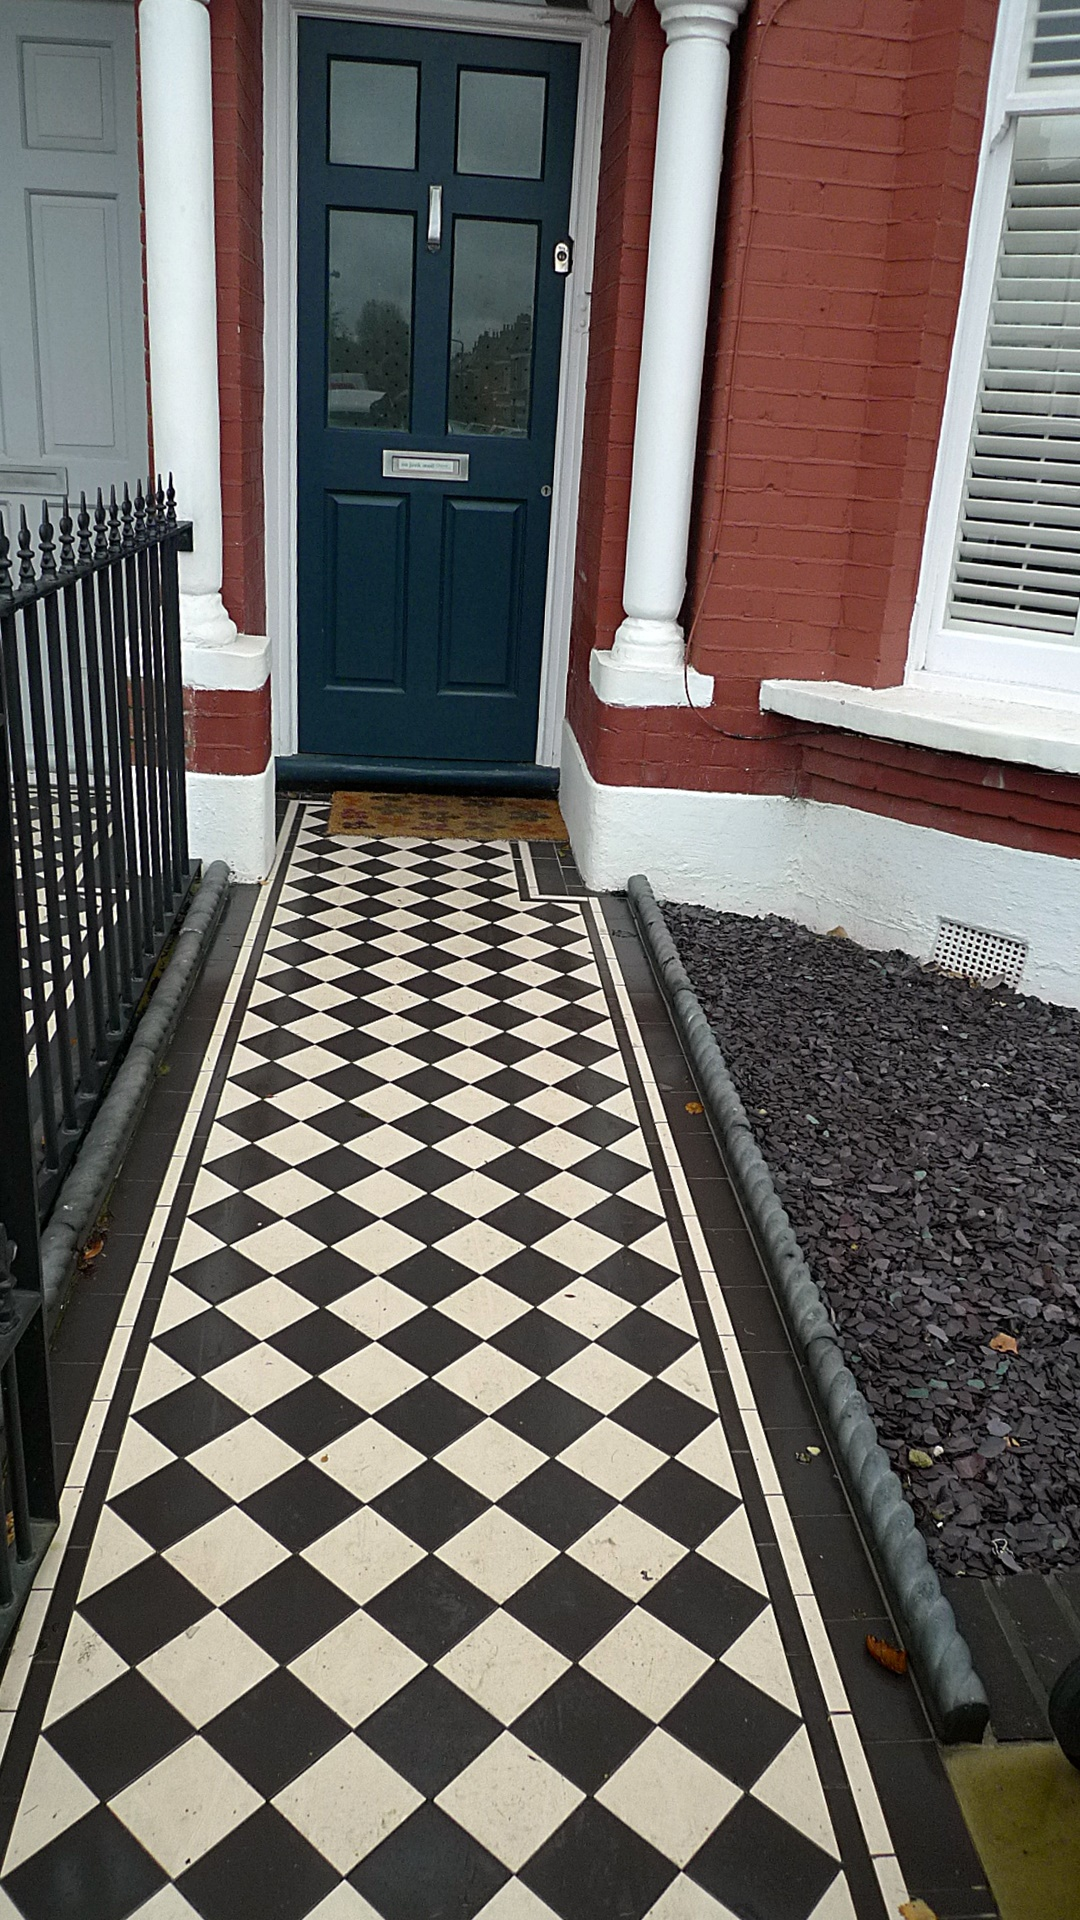 Ornamental stone black and white Victorian mosaic metal gate metal rail charcoal rope edge tiles York stone entrance stone Streatham Balham Clapham West Norwood London